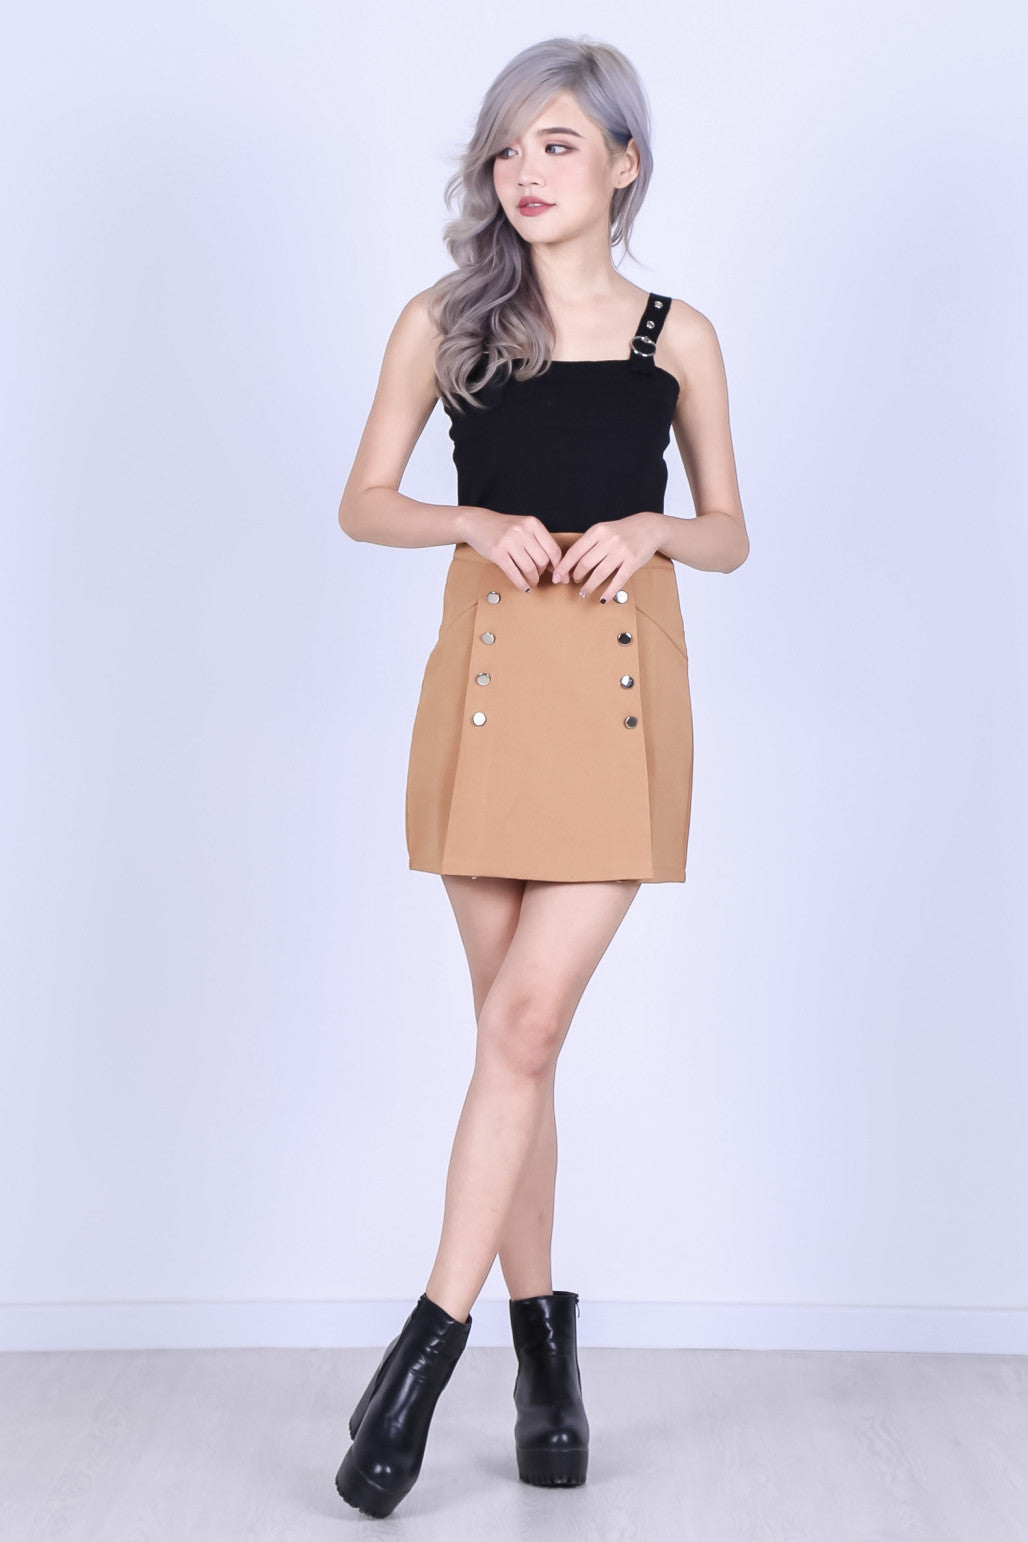 MILITARY DOUBLE ROW SKORTS IN CAMEL - TOPAZETTE